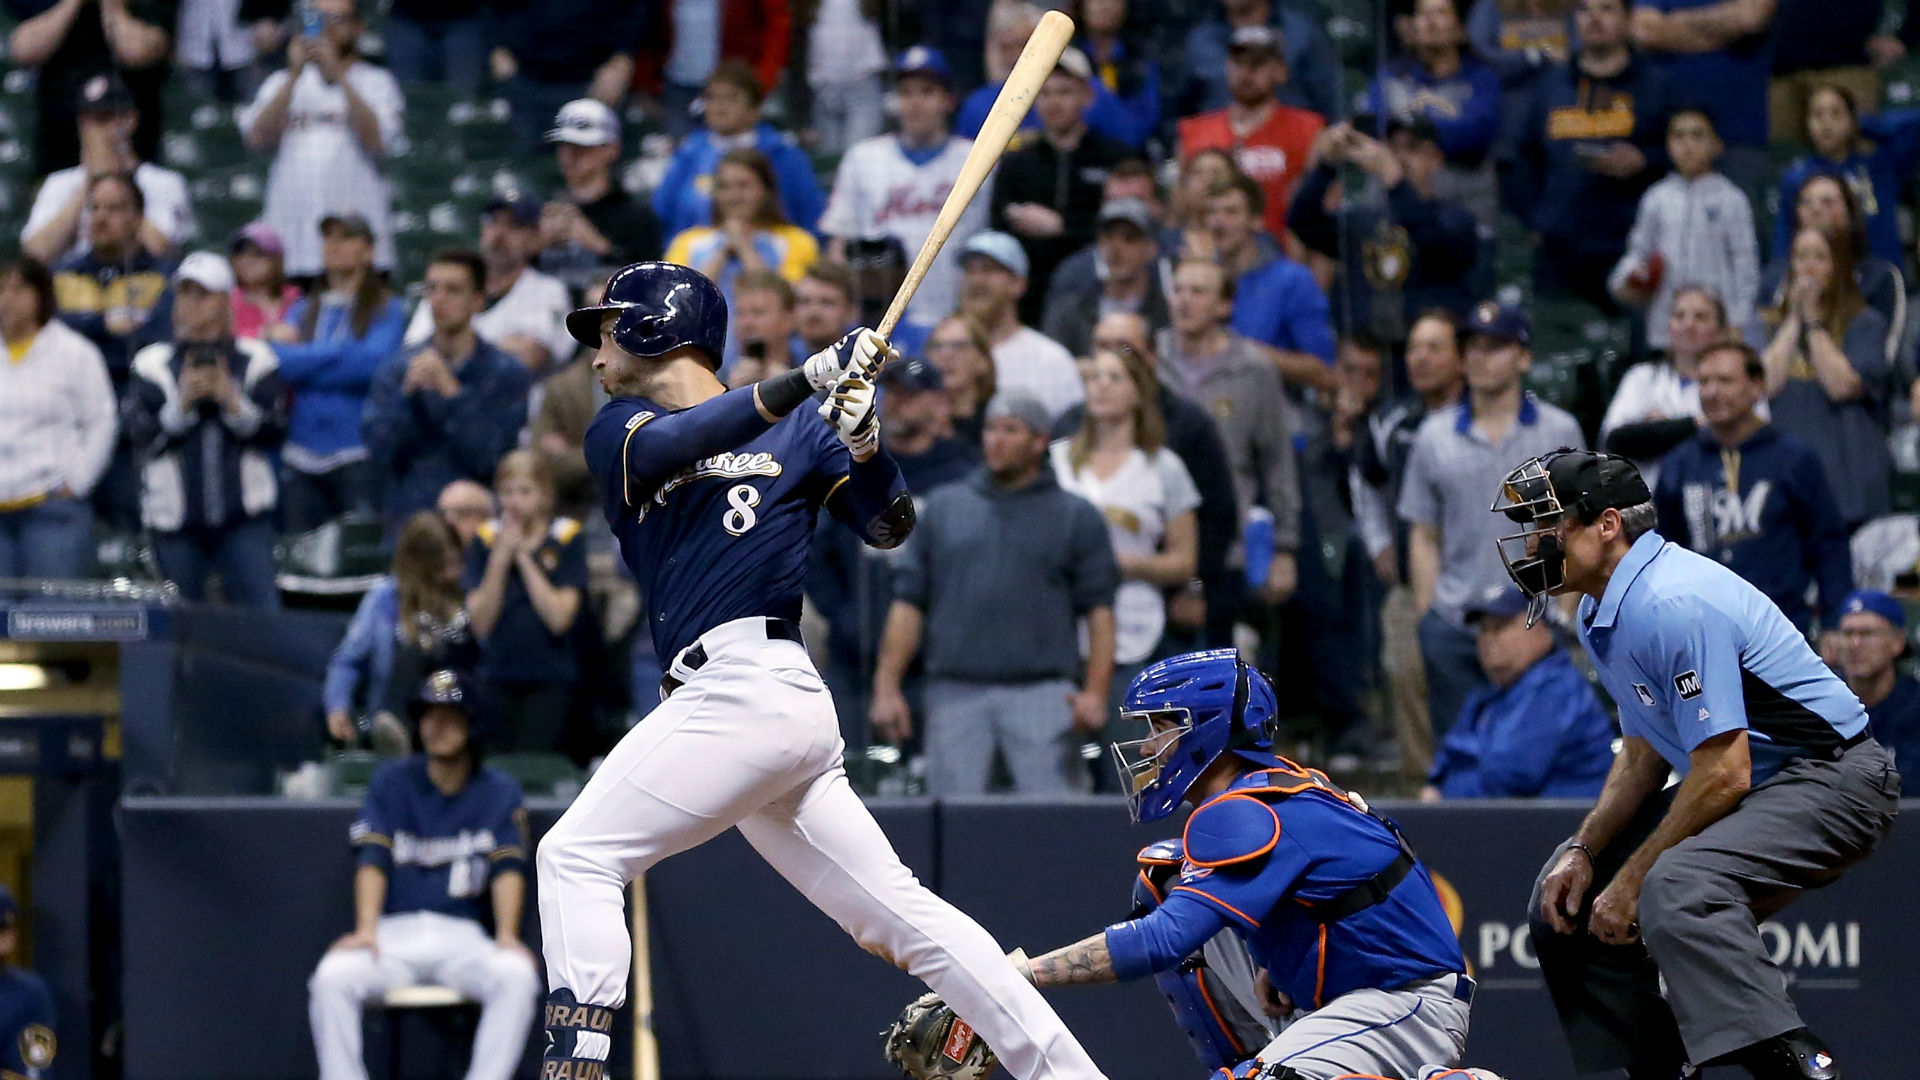 MLB wrap: Brewers come from behind to beat Mets in 18 innings